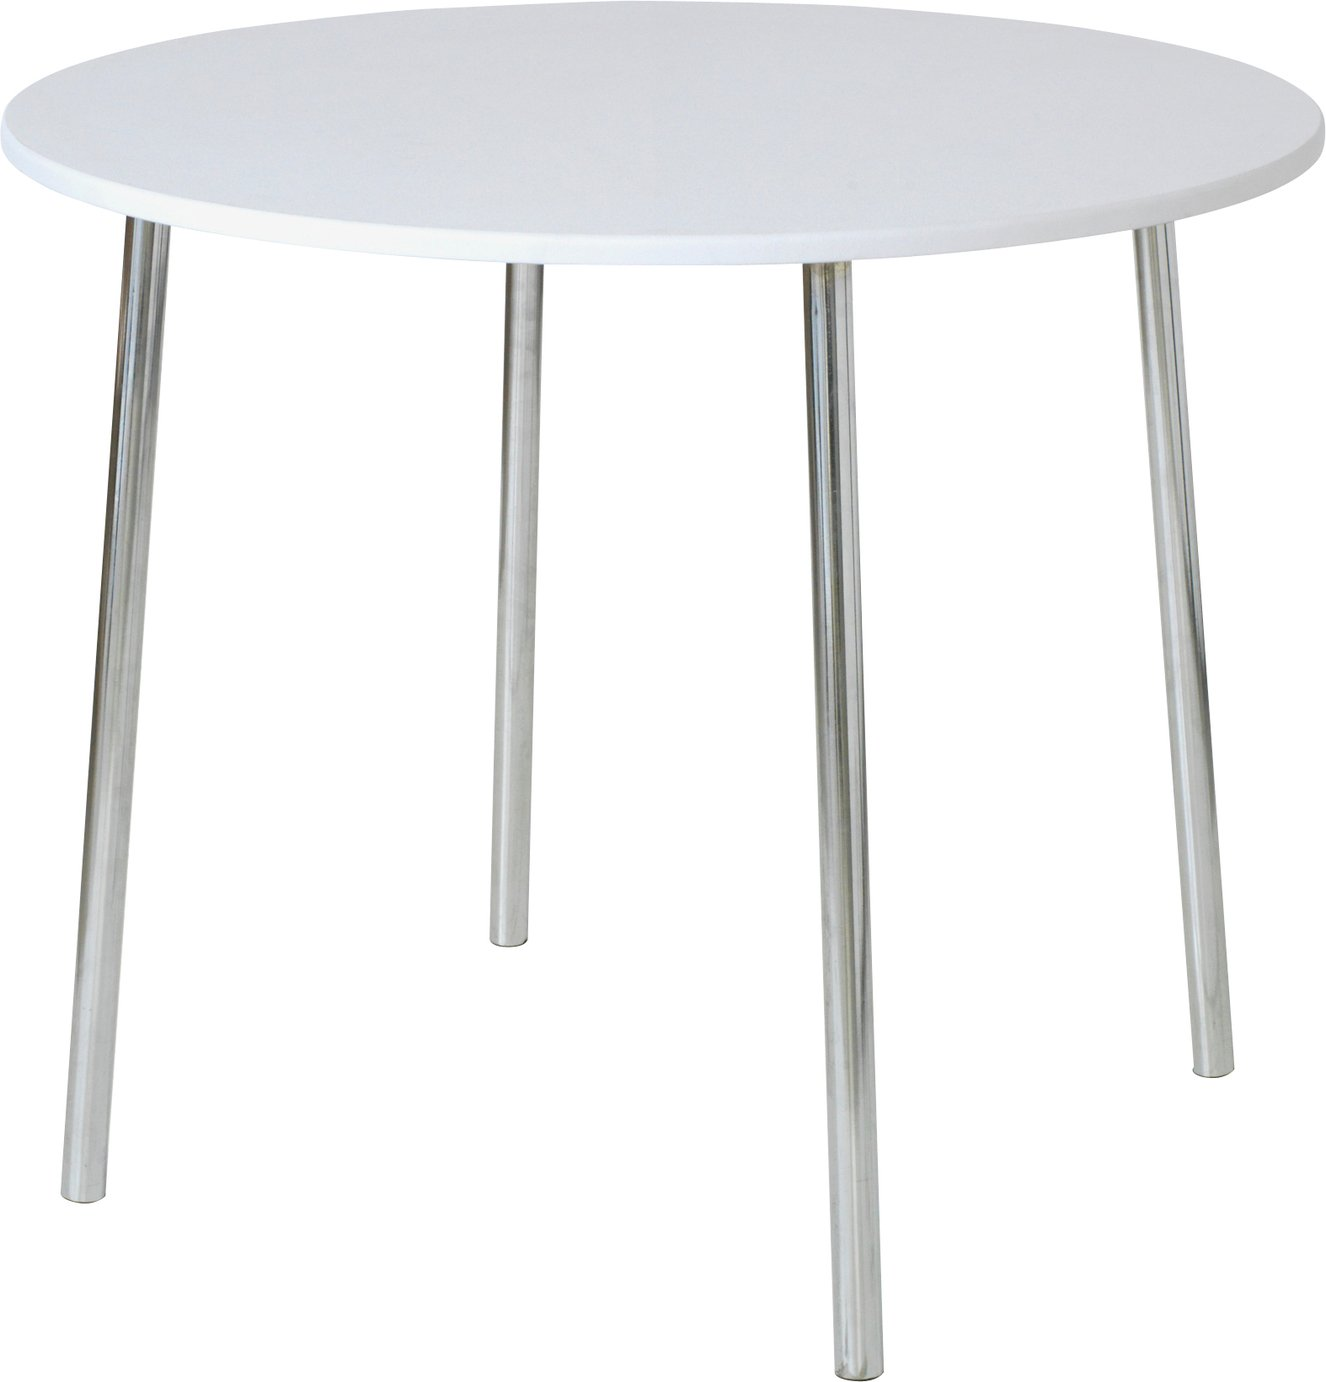 Argos Home Round Wood Effect 2 Seater Dining Table - White